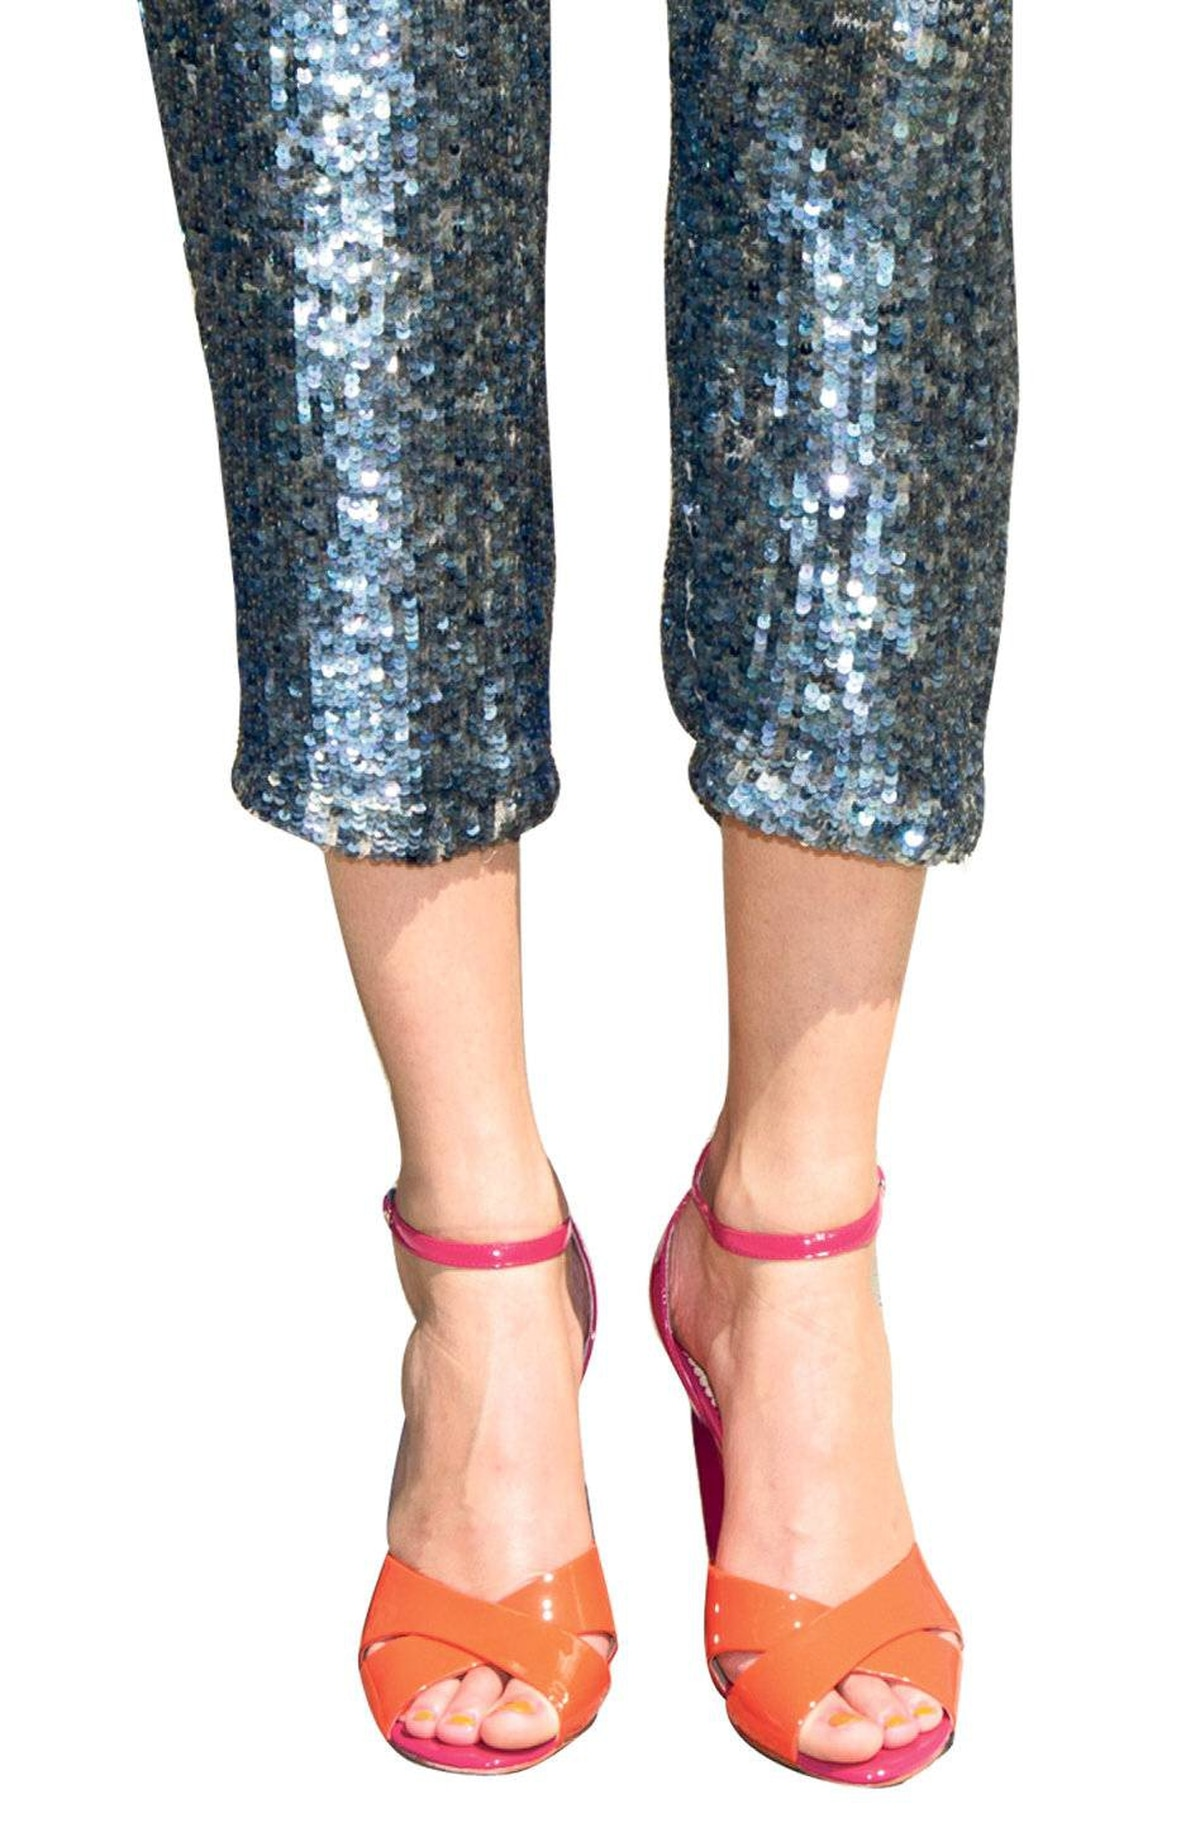 It's official: fluoro pink and orange are the new black and white ... until next season. Le Chateau heels, $89.95. Adam sequined pants, $535 at the Bay.